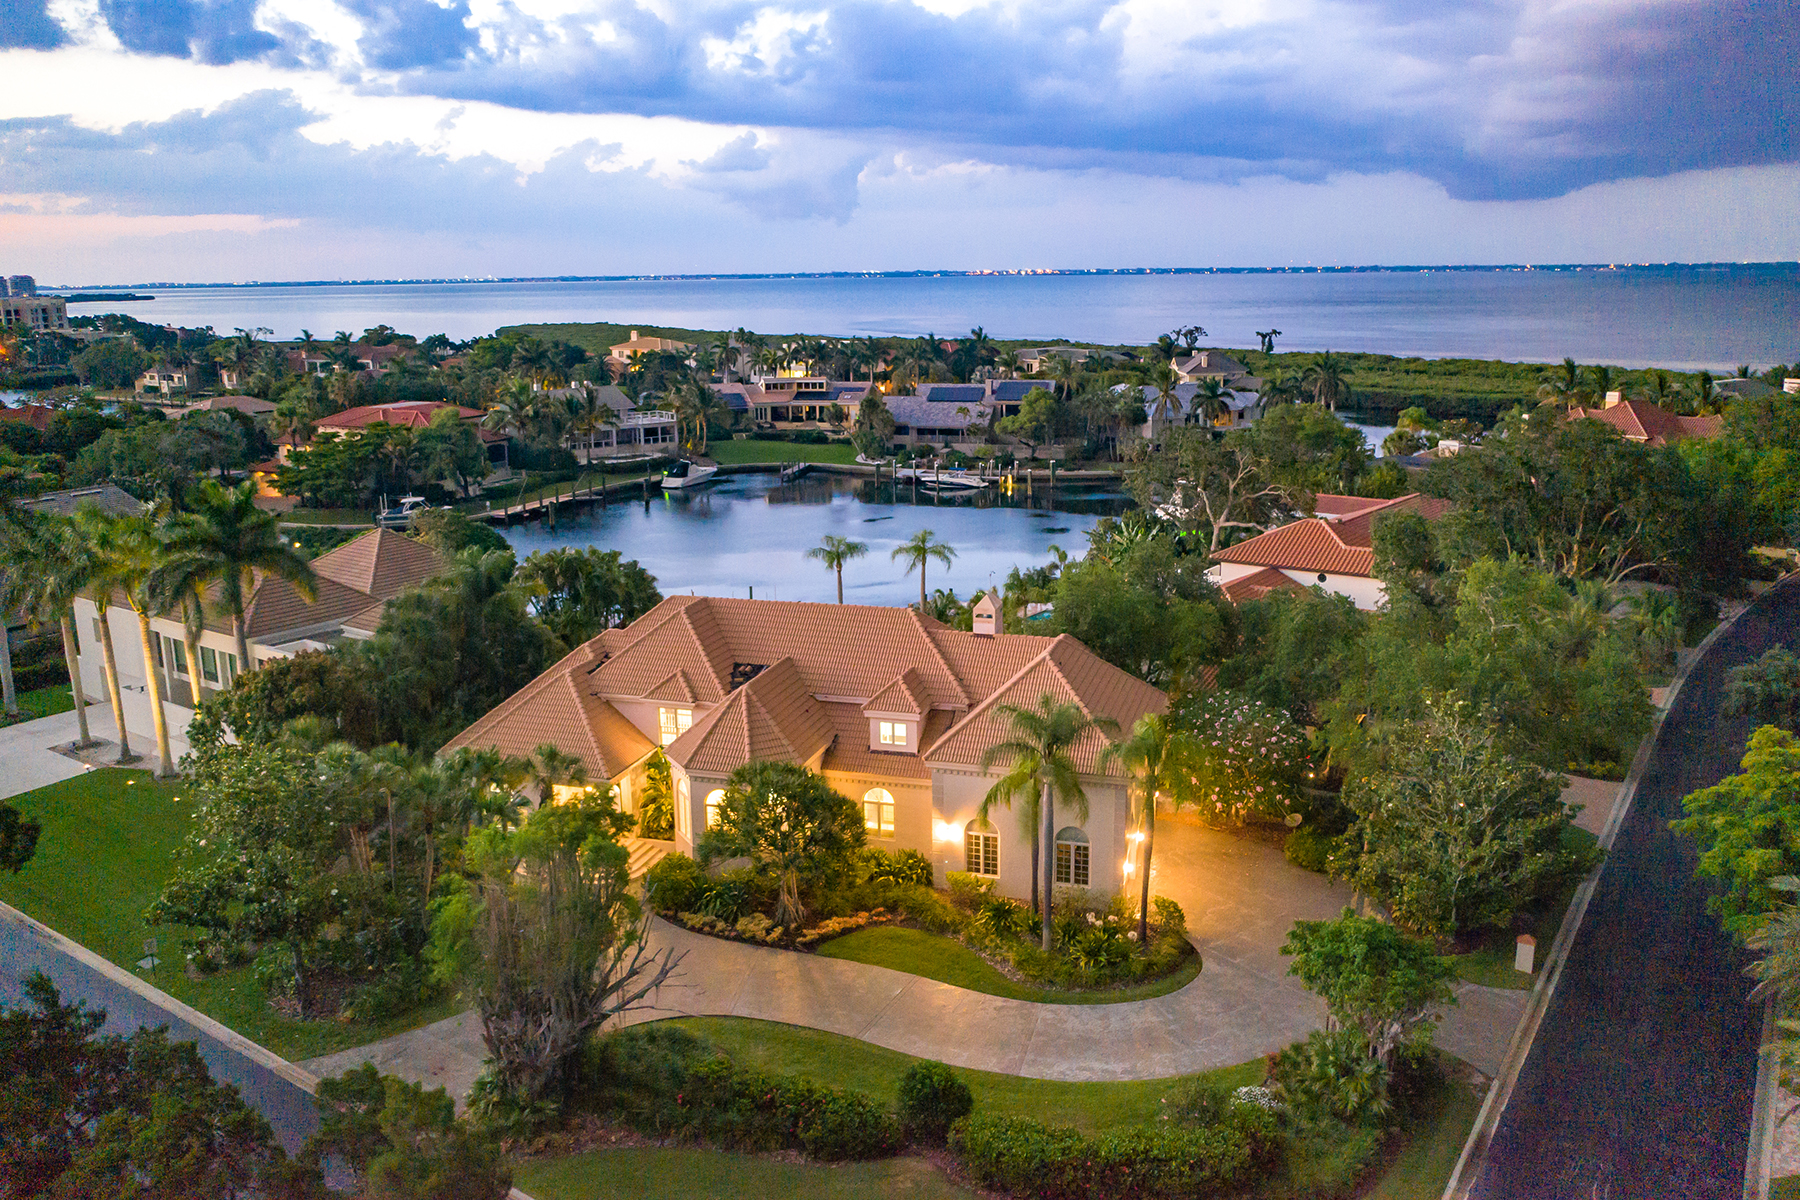 Single Family Homes for Active at BAY ISLES 501 Harbor Point Rd Longboat Key, Florida 34228 United States